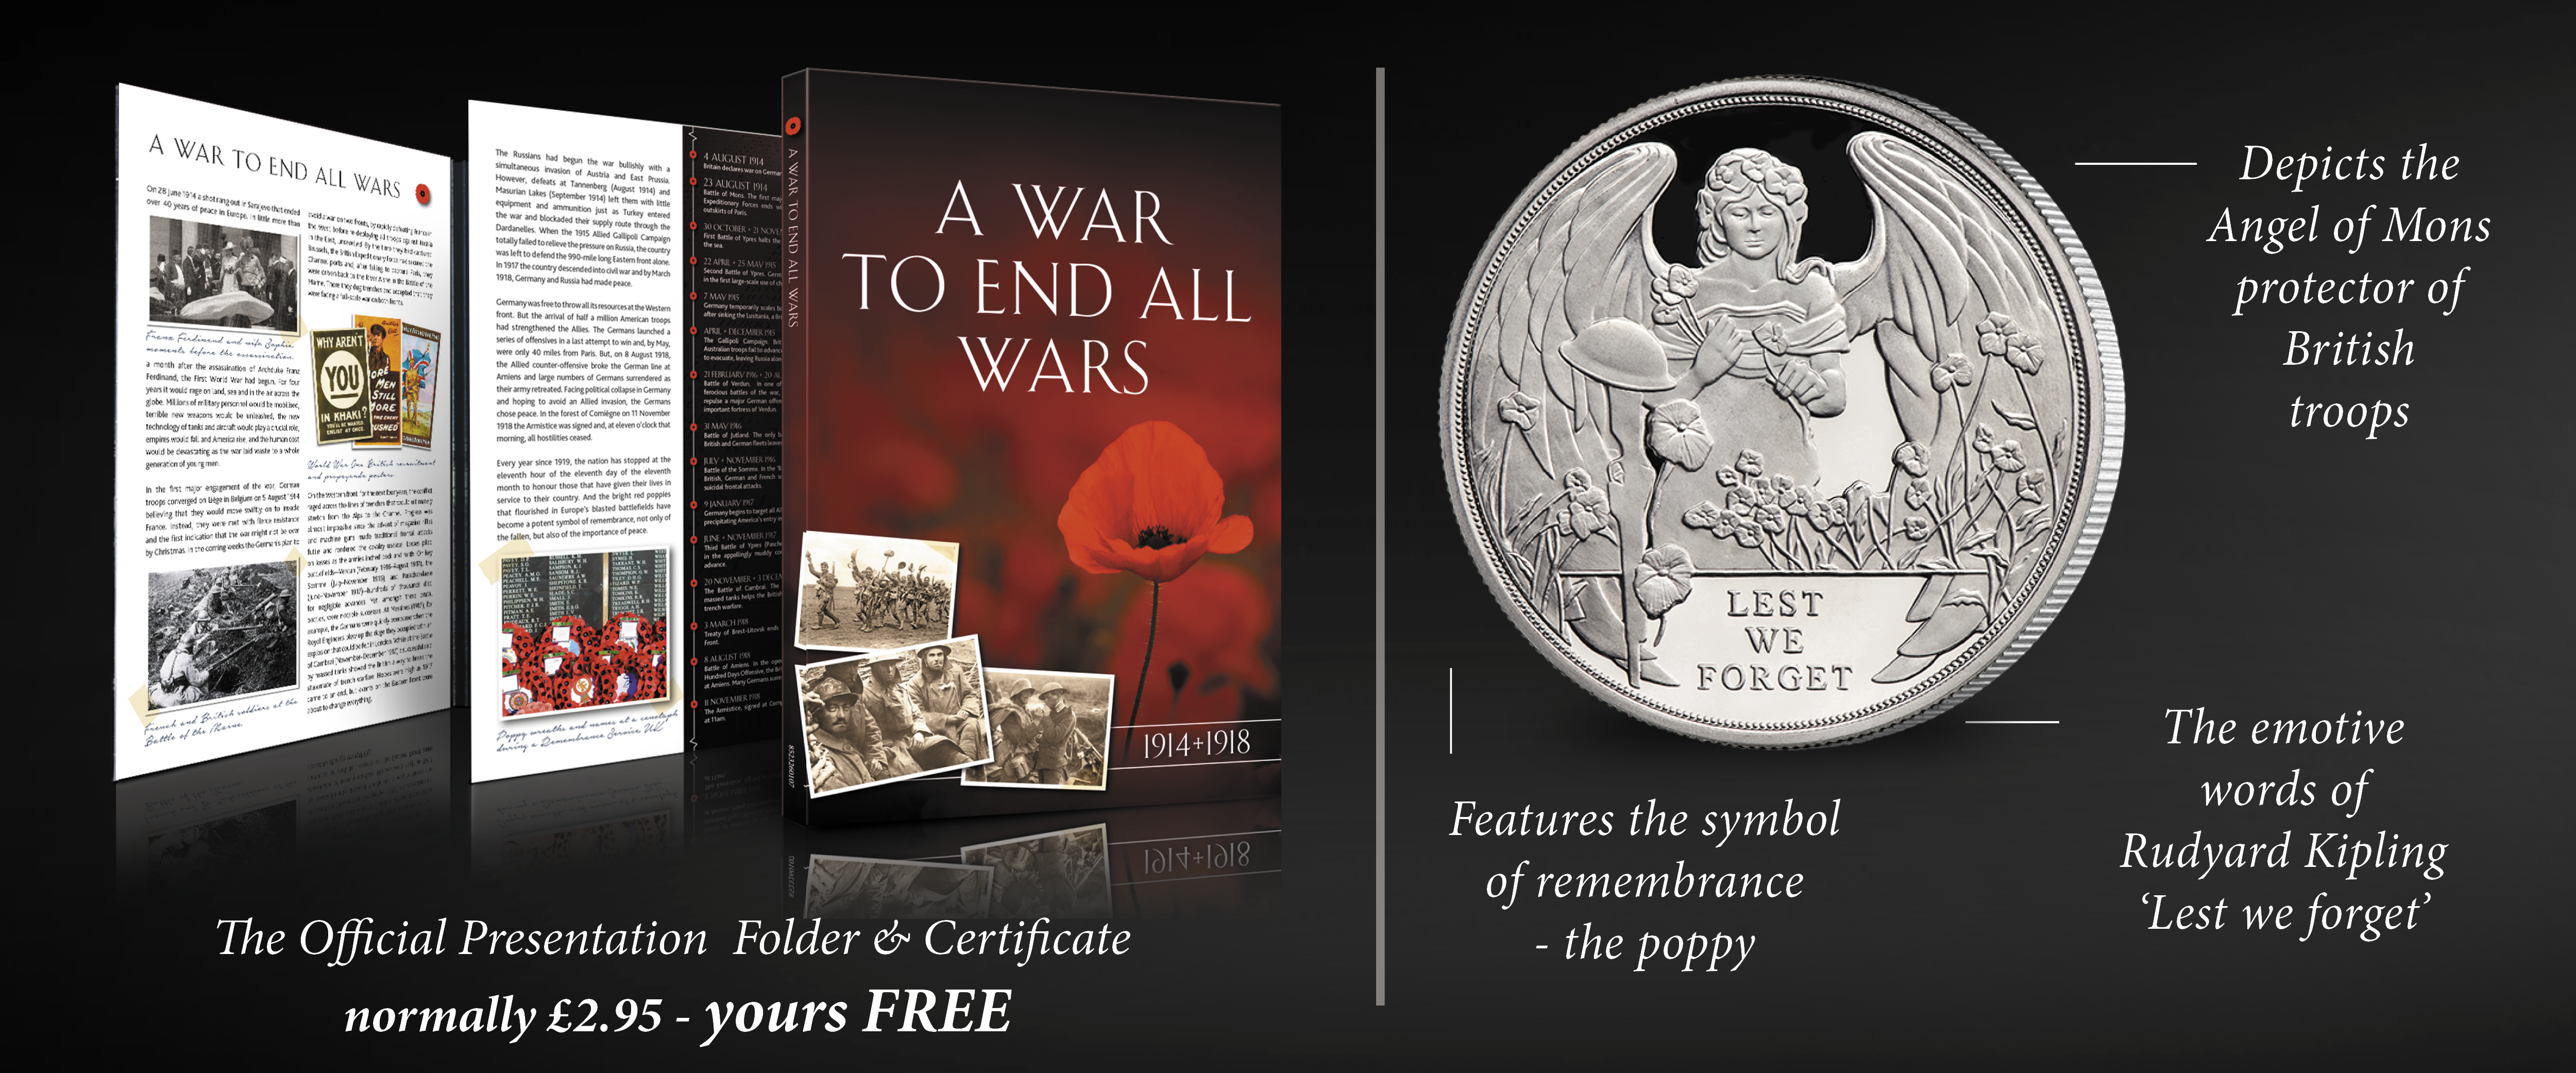 Ypres Centenary Coin FREE Collectors Folder